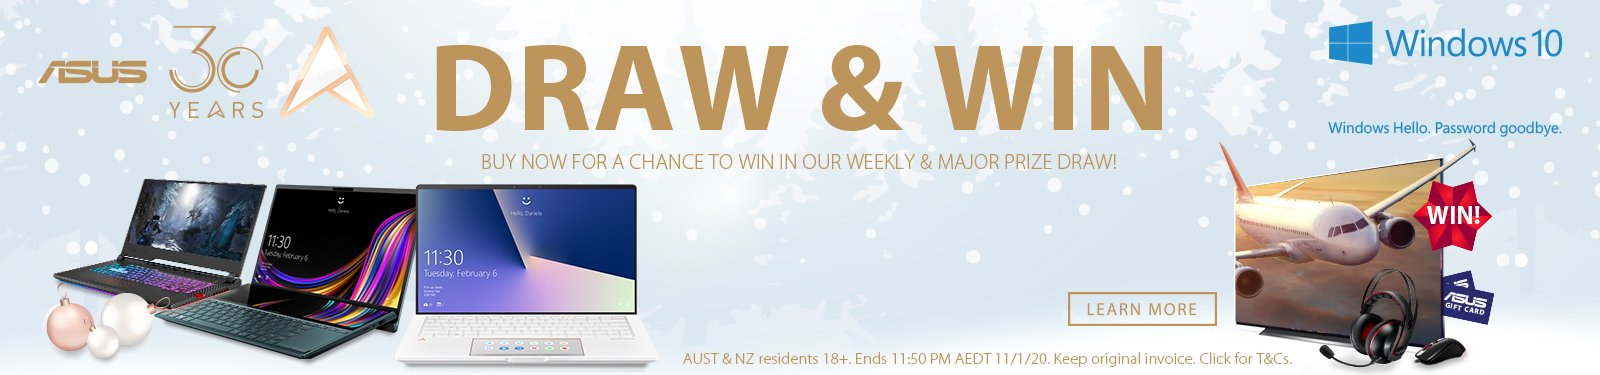 Asus Draw & Win